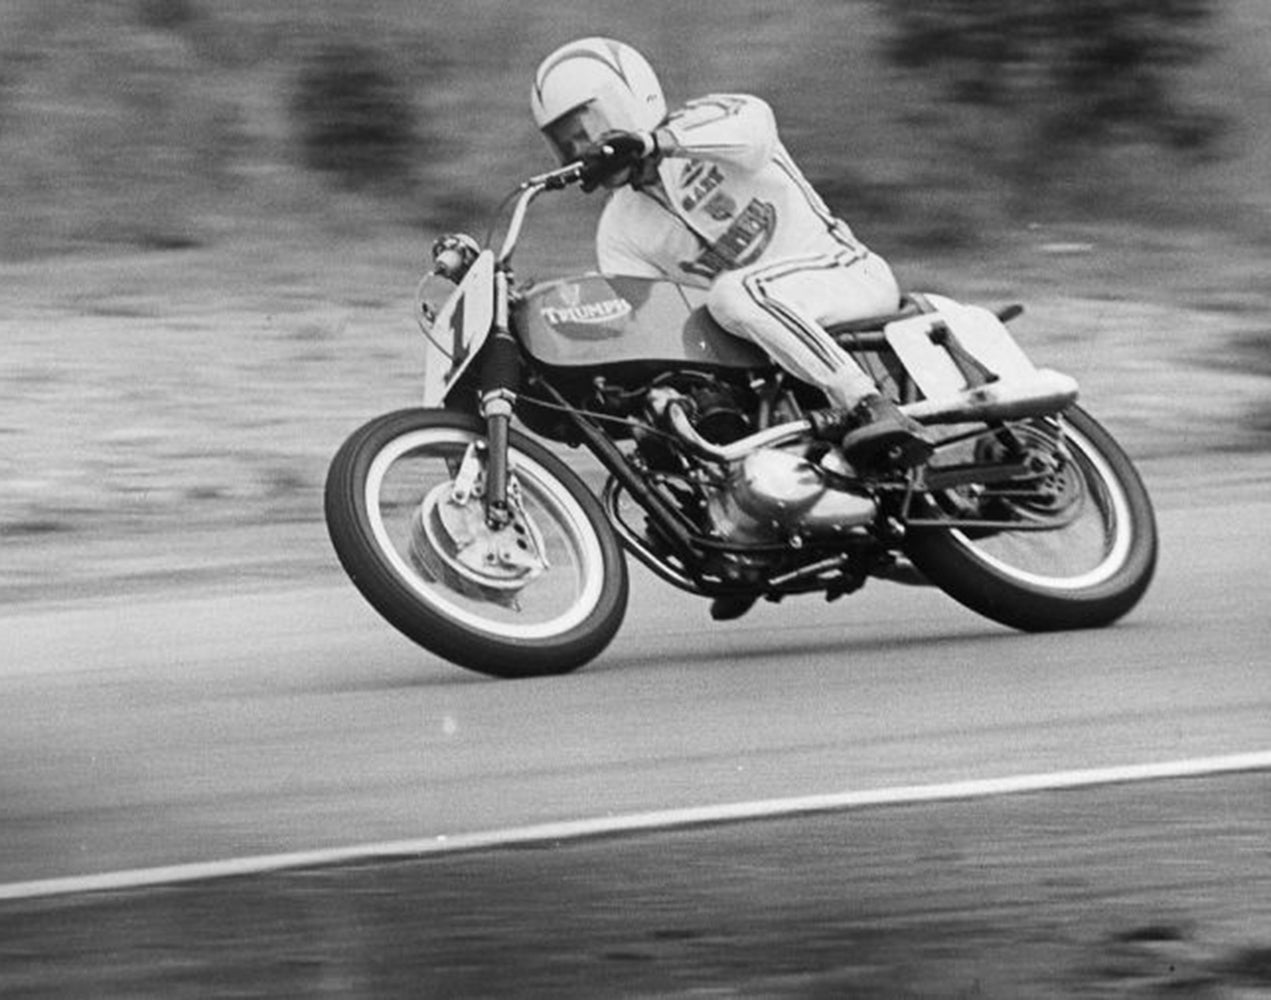 1967-68 Daytona winner and AMA Grand National champion, Gary Nixon, on a Triumph 500. Lowbrow Customs, The History Of Triumph Motorcycles